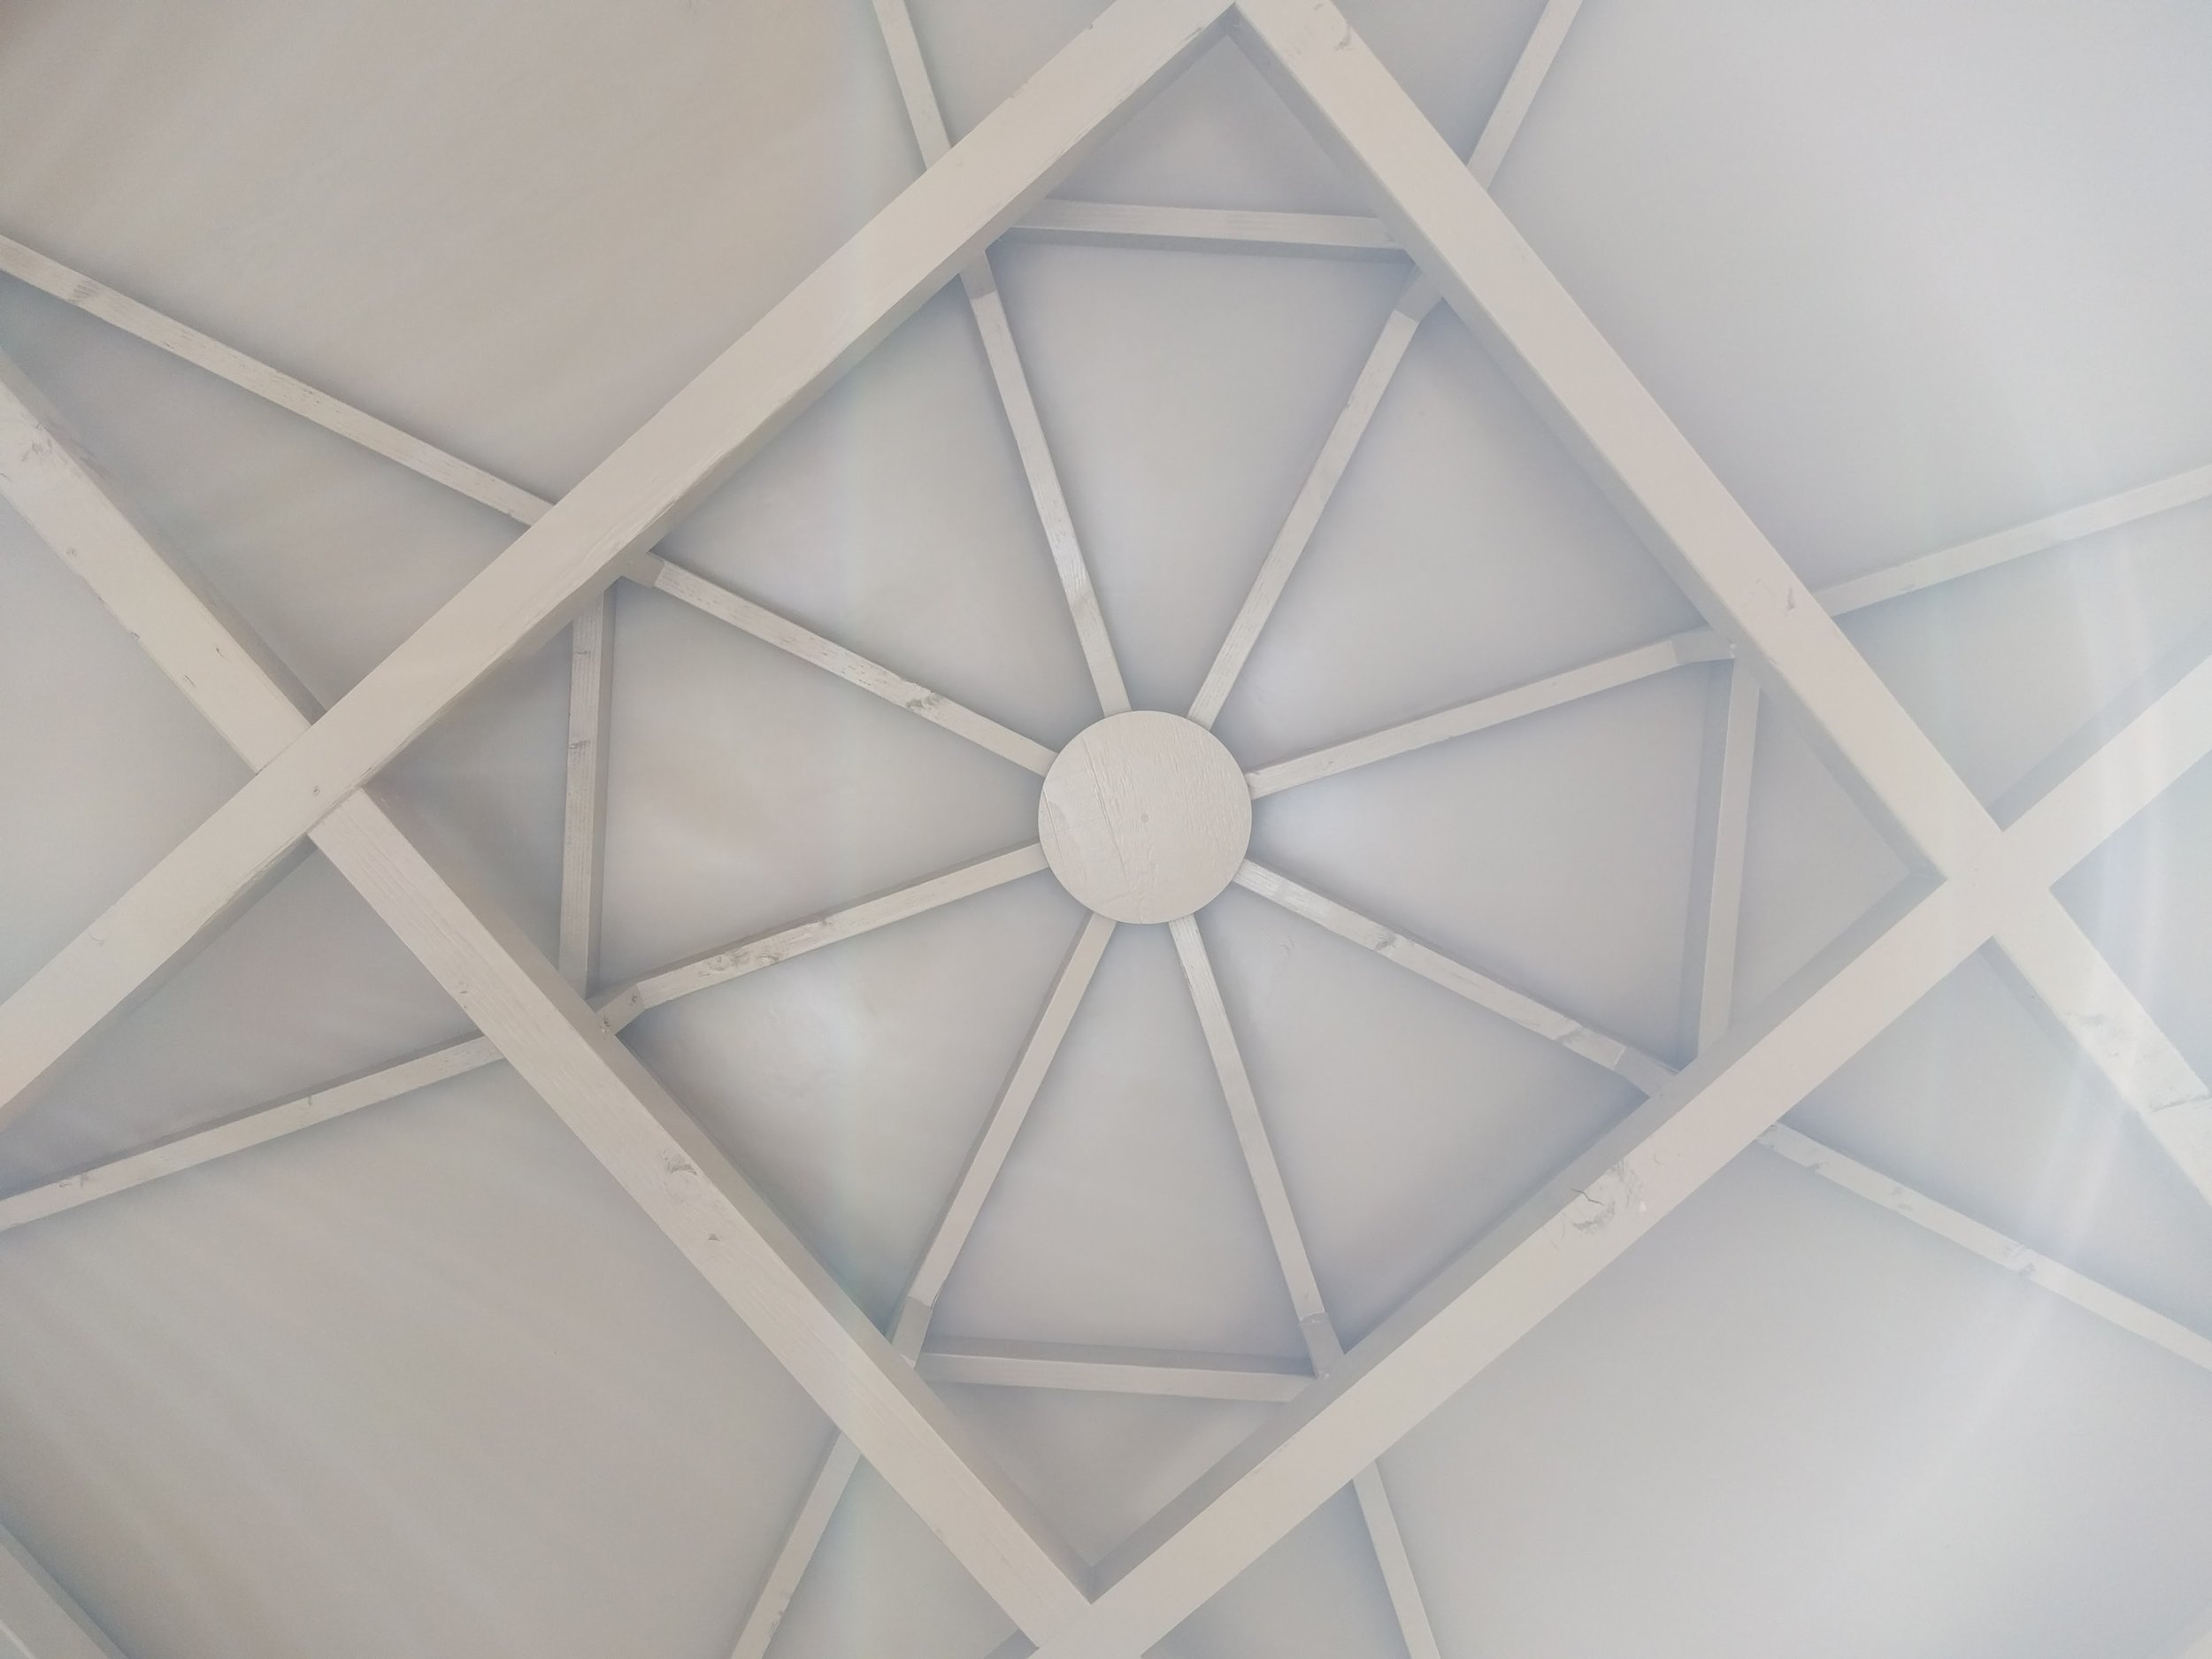 Ceiling of Gazebo